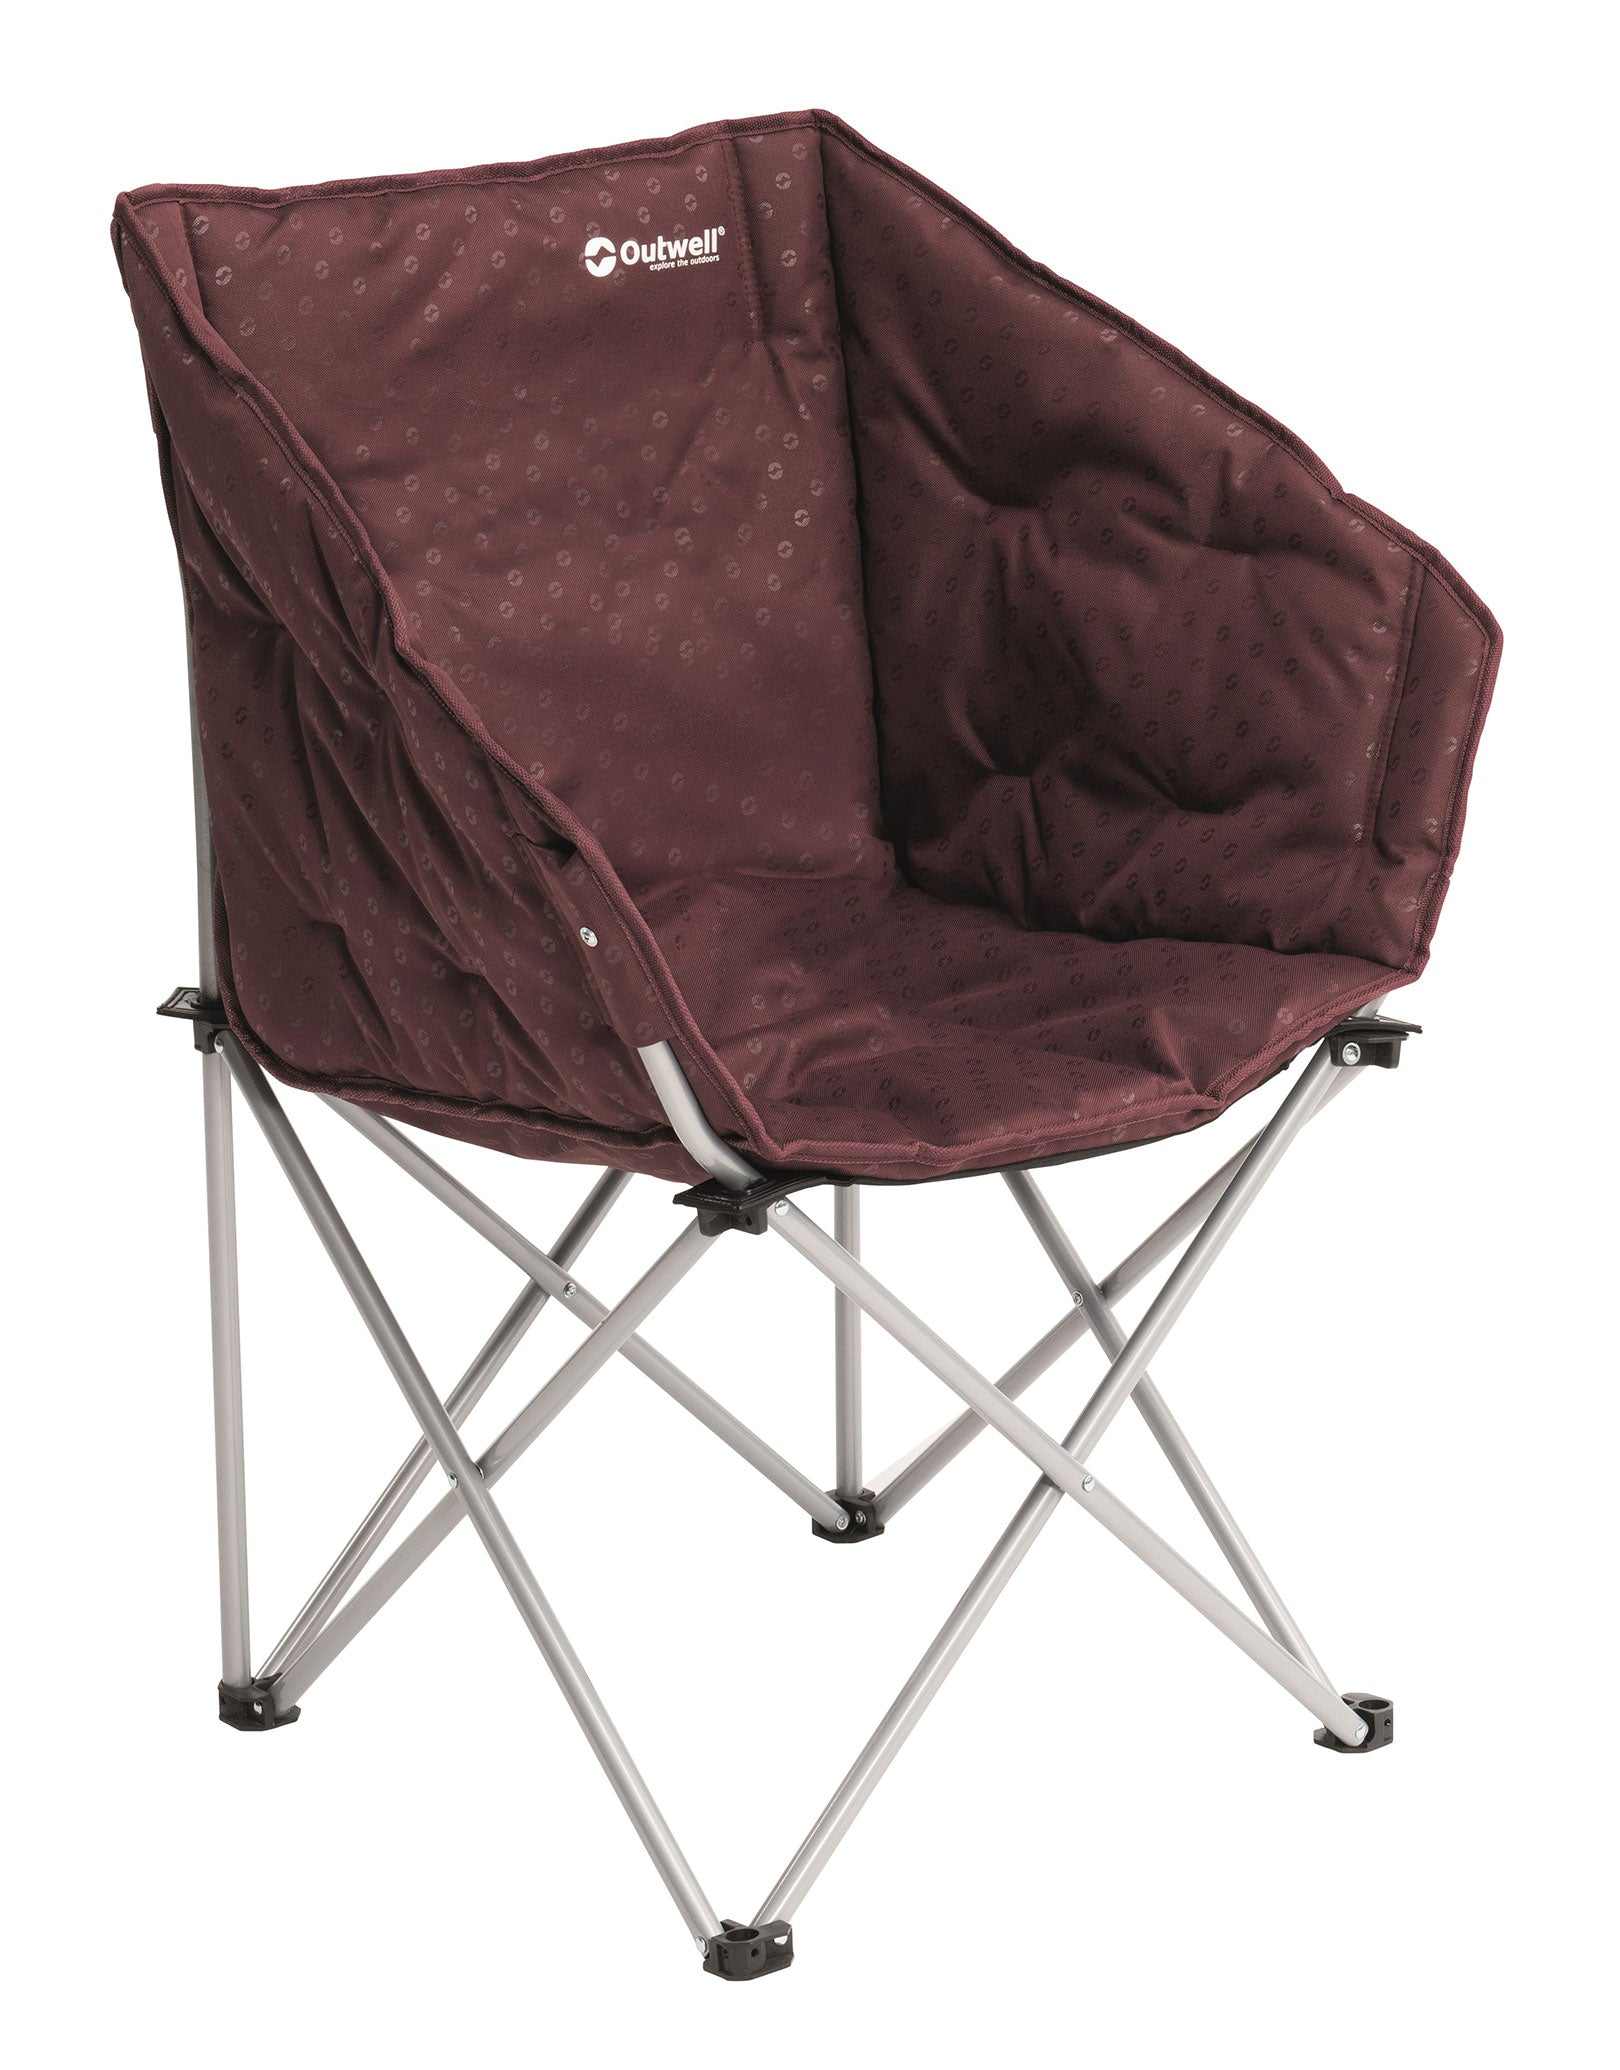 Image of Outwell Angela Camping Chair - Claret